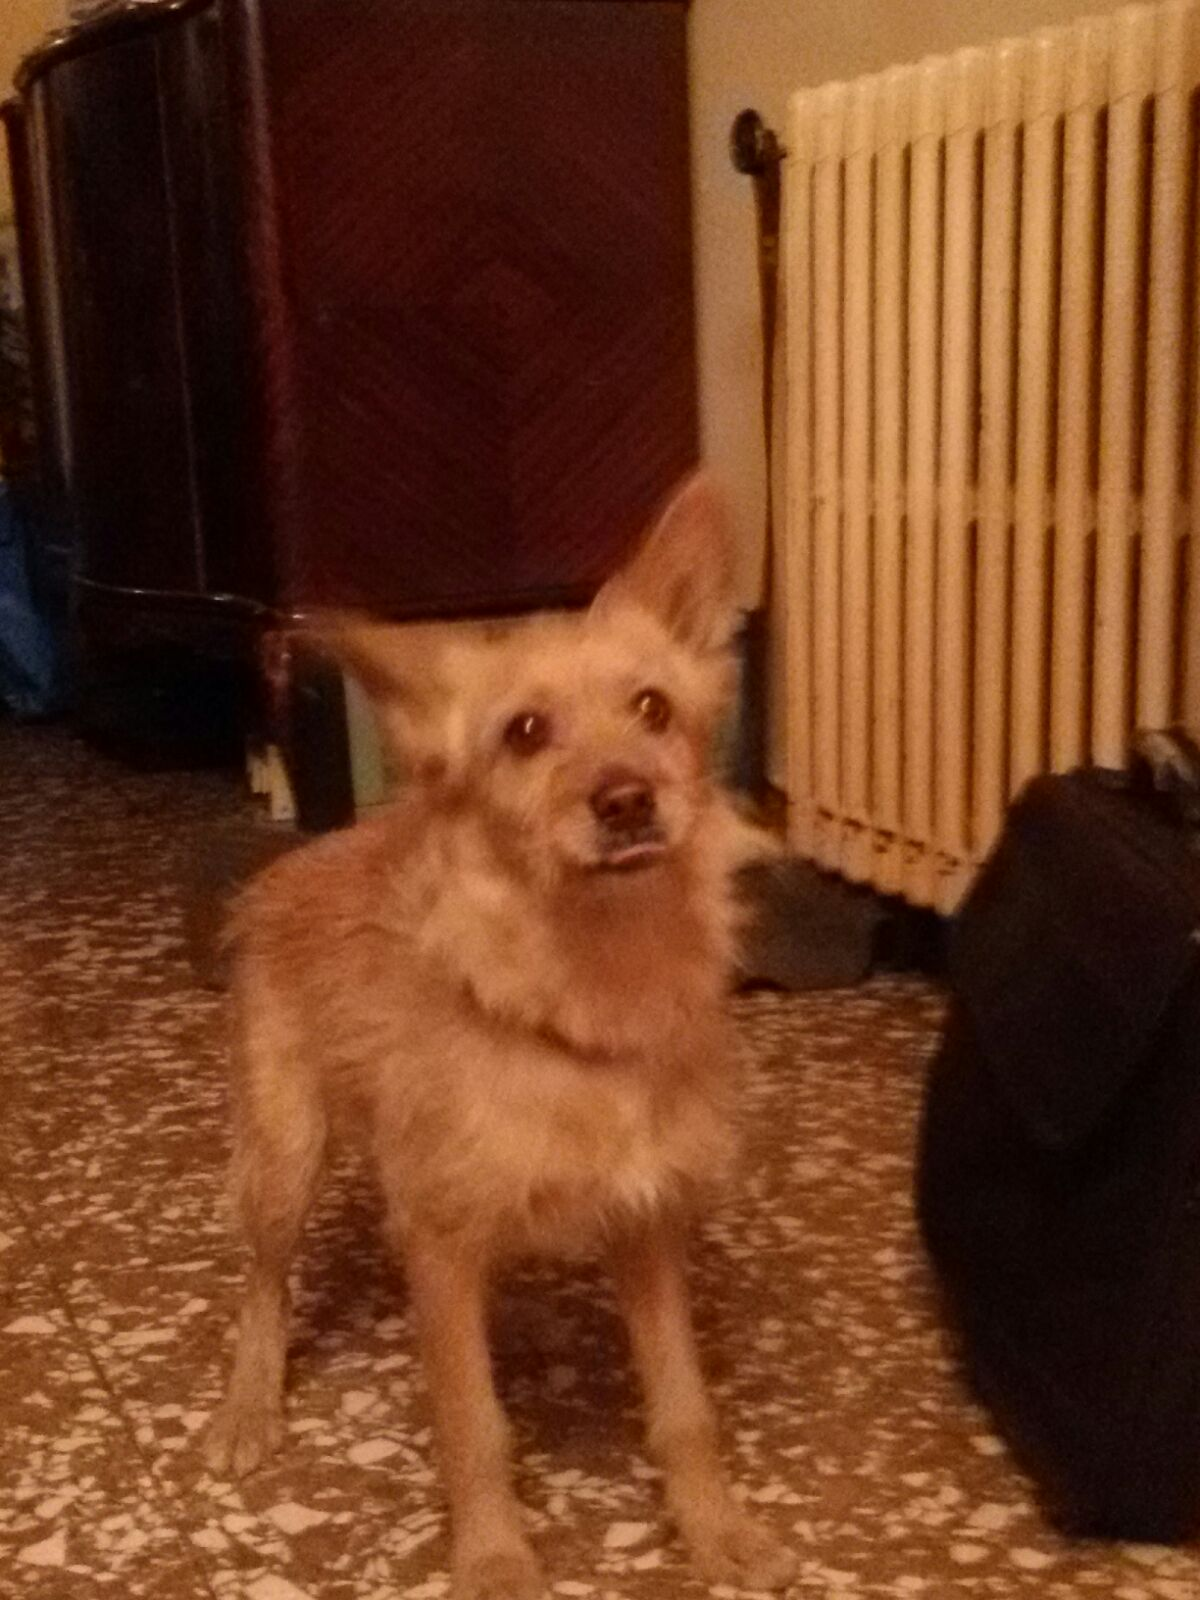 Lost & Found Dog in Lebanon: Mixt dog lost